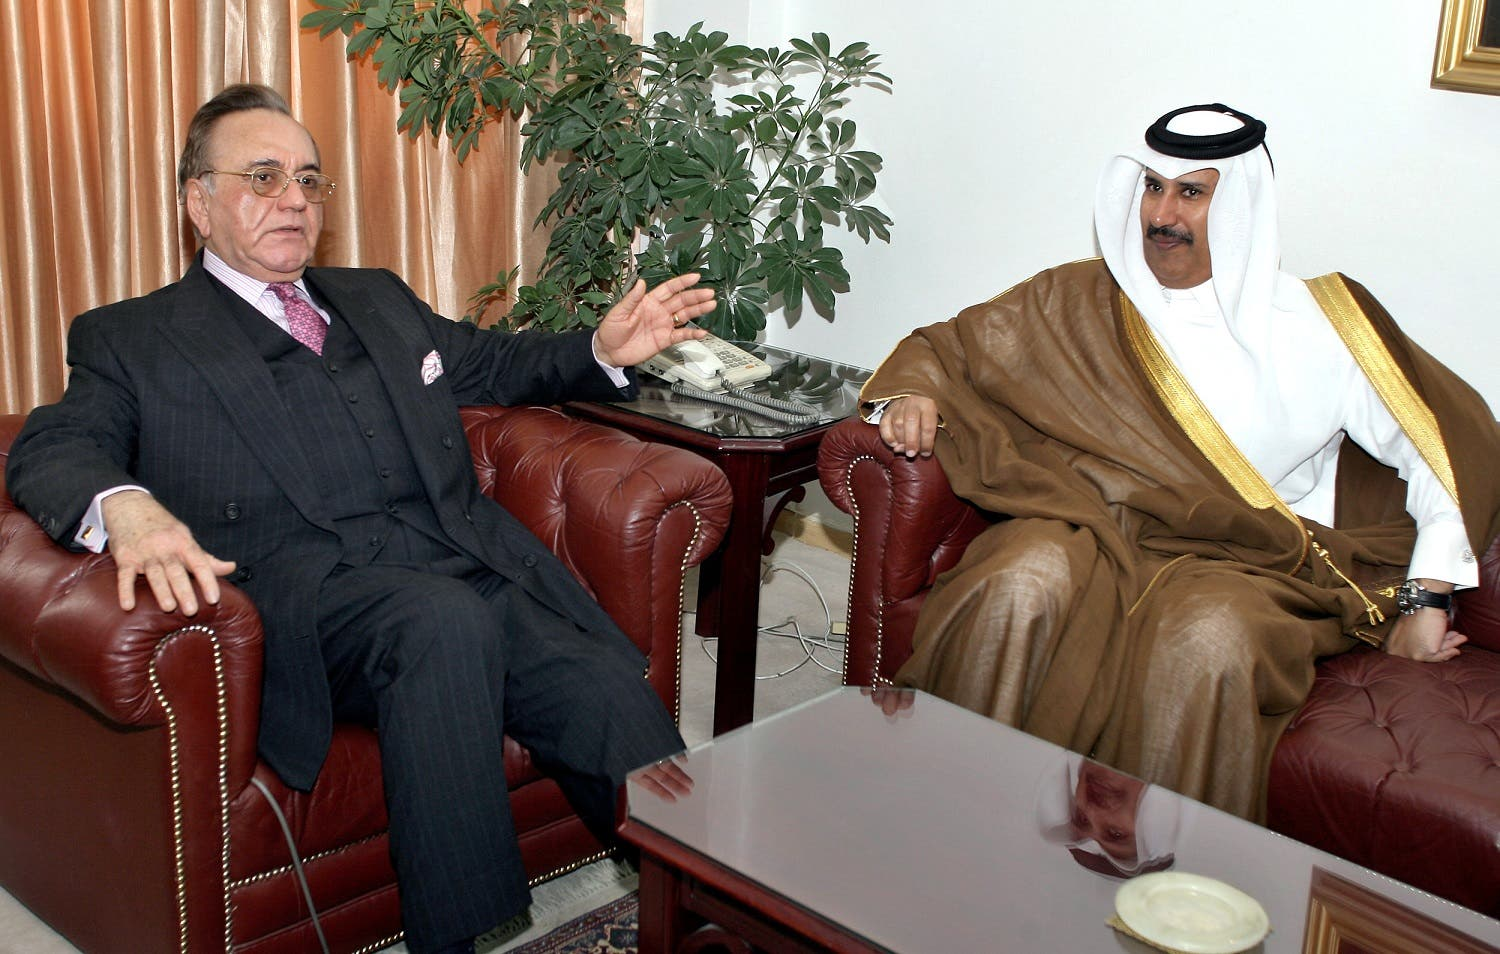 Qatar's then Deputy Premier and Foreign Minister Sheikh Hamad bin Jassim bin Jabor al-Thani (R) with Pakistan's Foreign Minister Khurshid Mahmud Kasuri prior to a meeting in Islamabad, 30 June 2006. (AFP)